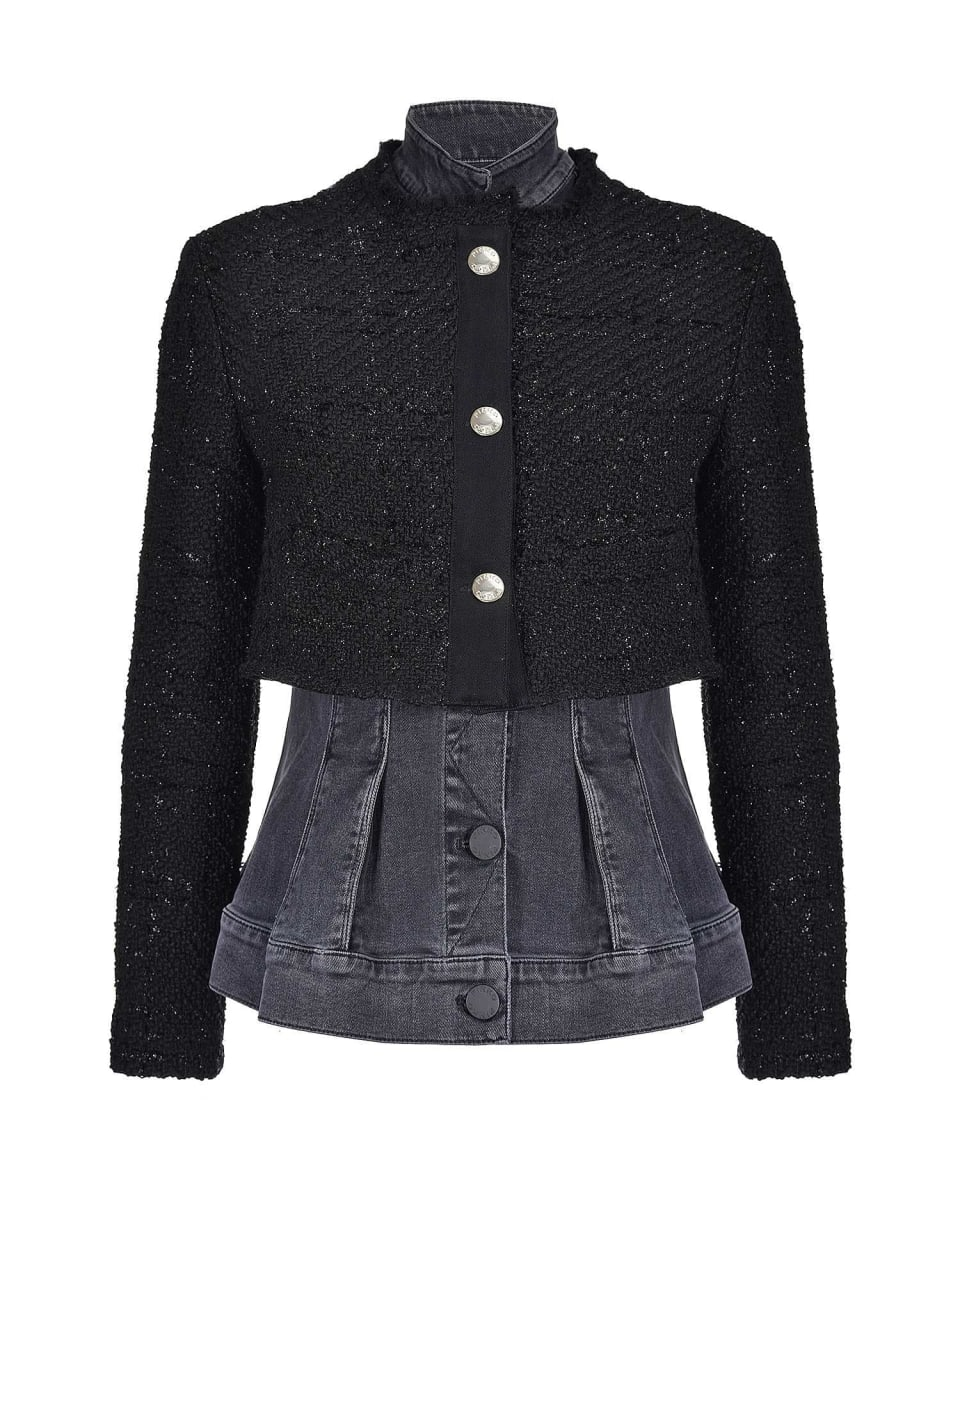 Two-piece jacket in comfort twill and lurex tweed